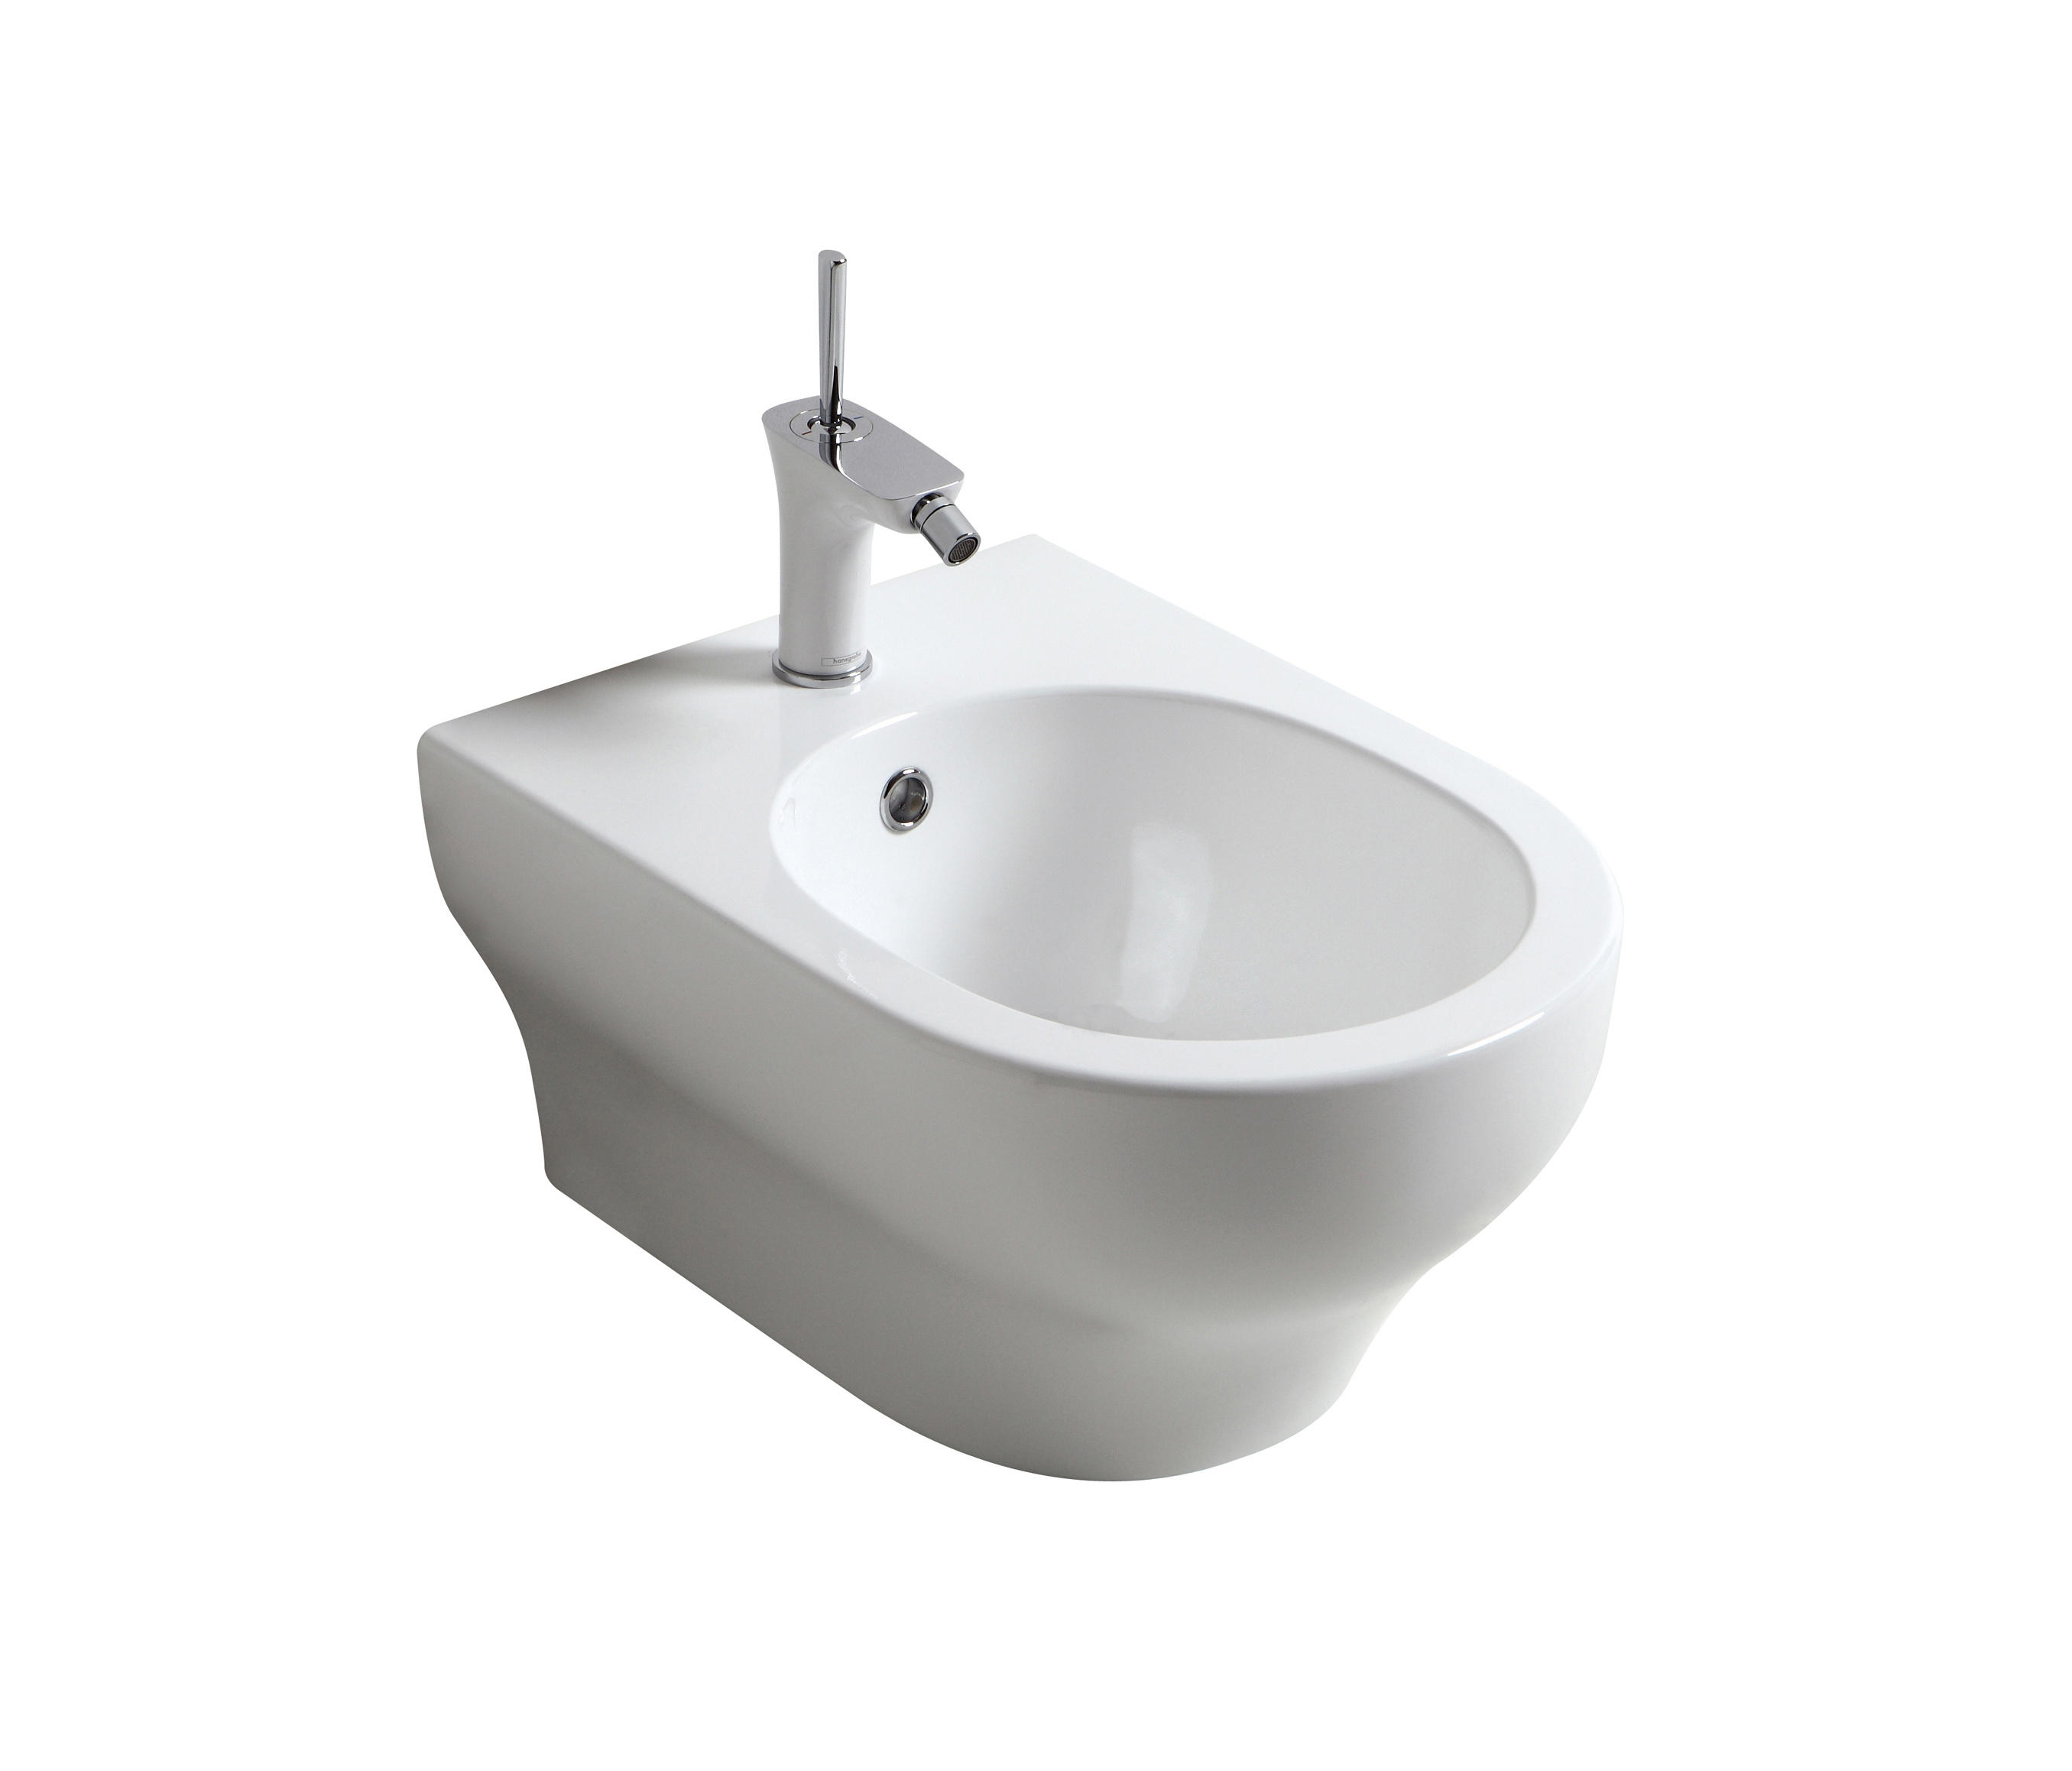 CLEAR - ONE HOLE WALL HUNG BIDET - Bidets from Olympia Ceramica ...